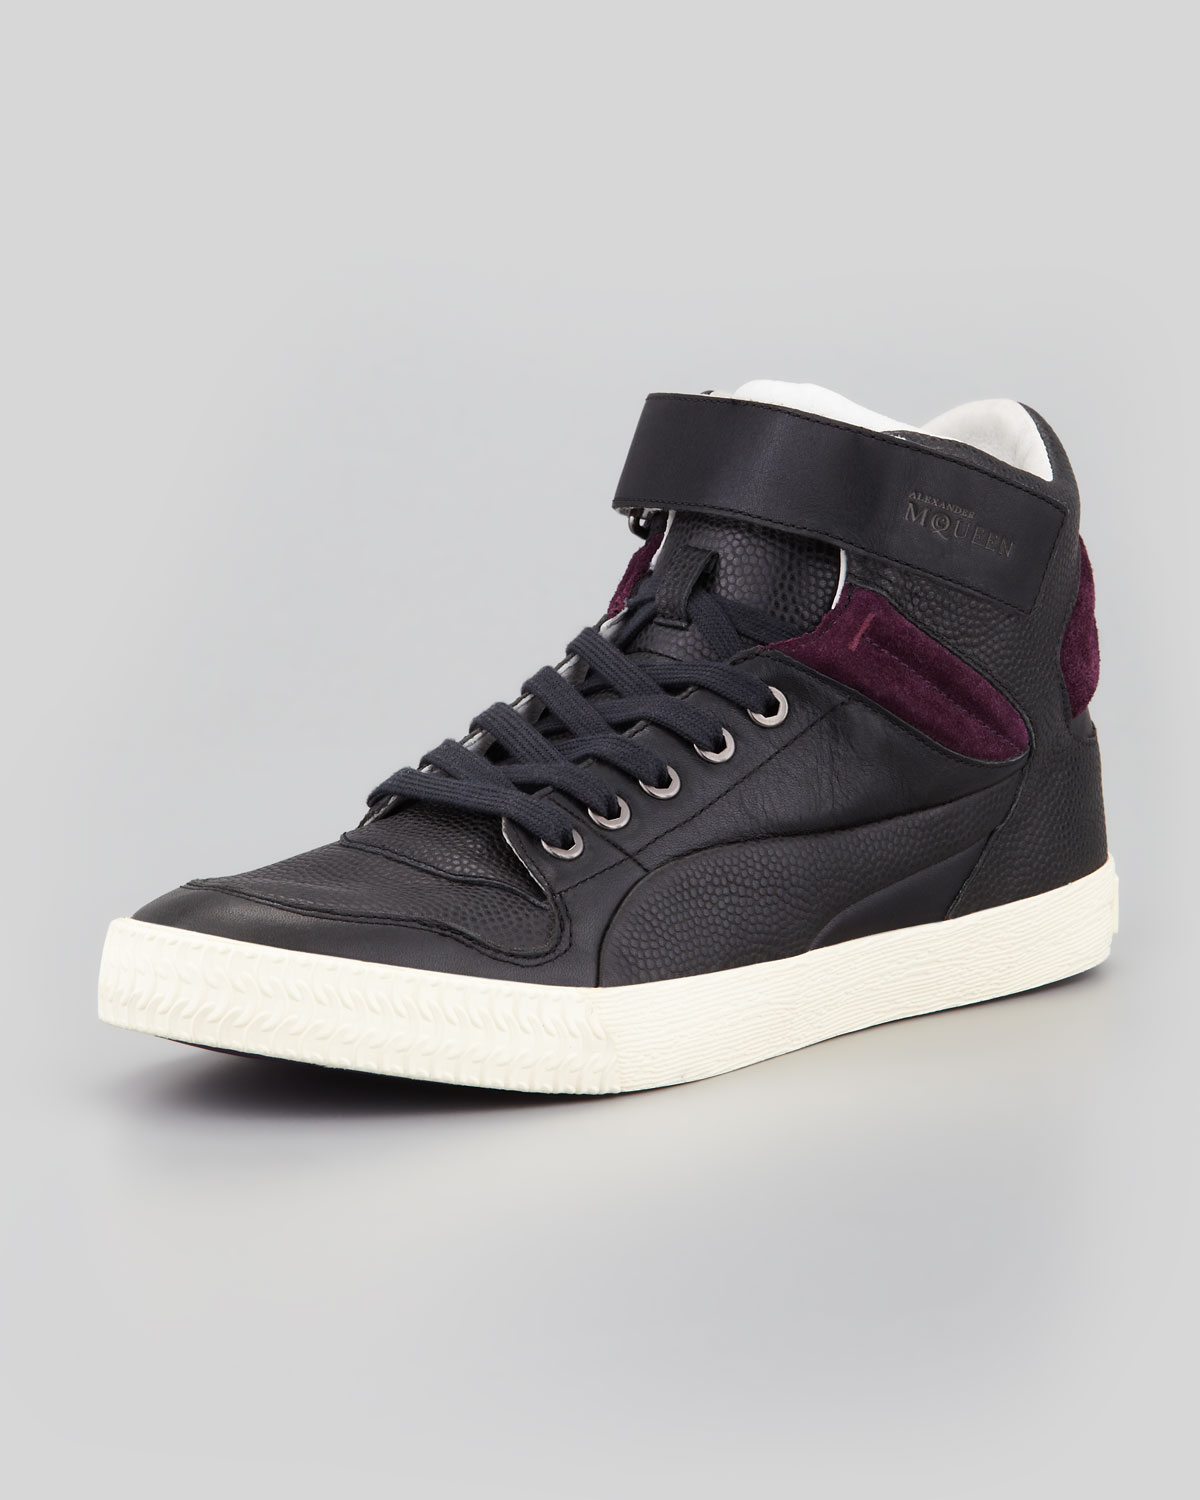 alexander mcqueen x puma street climber iii mid leather. Black Bedroom Furniture Sets. Home Design Ideas